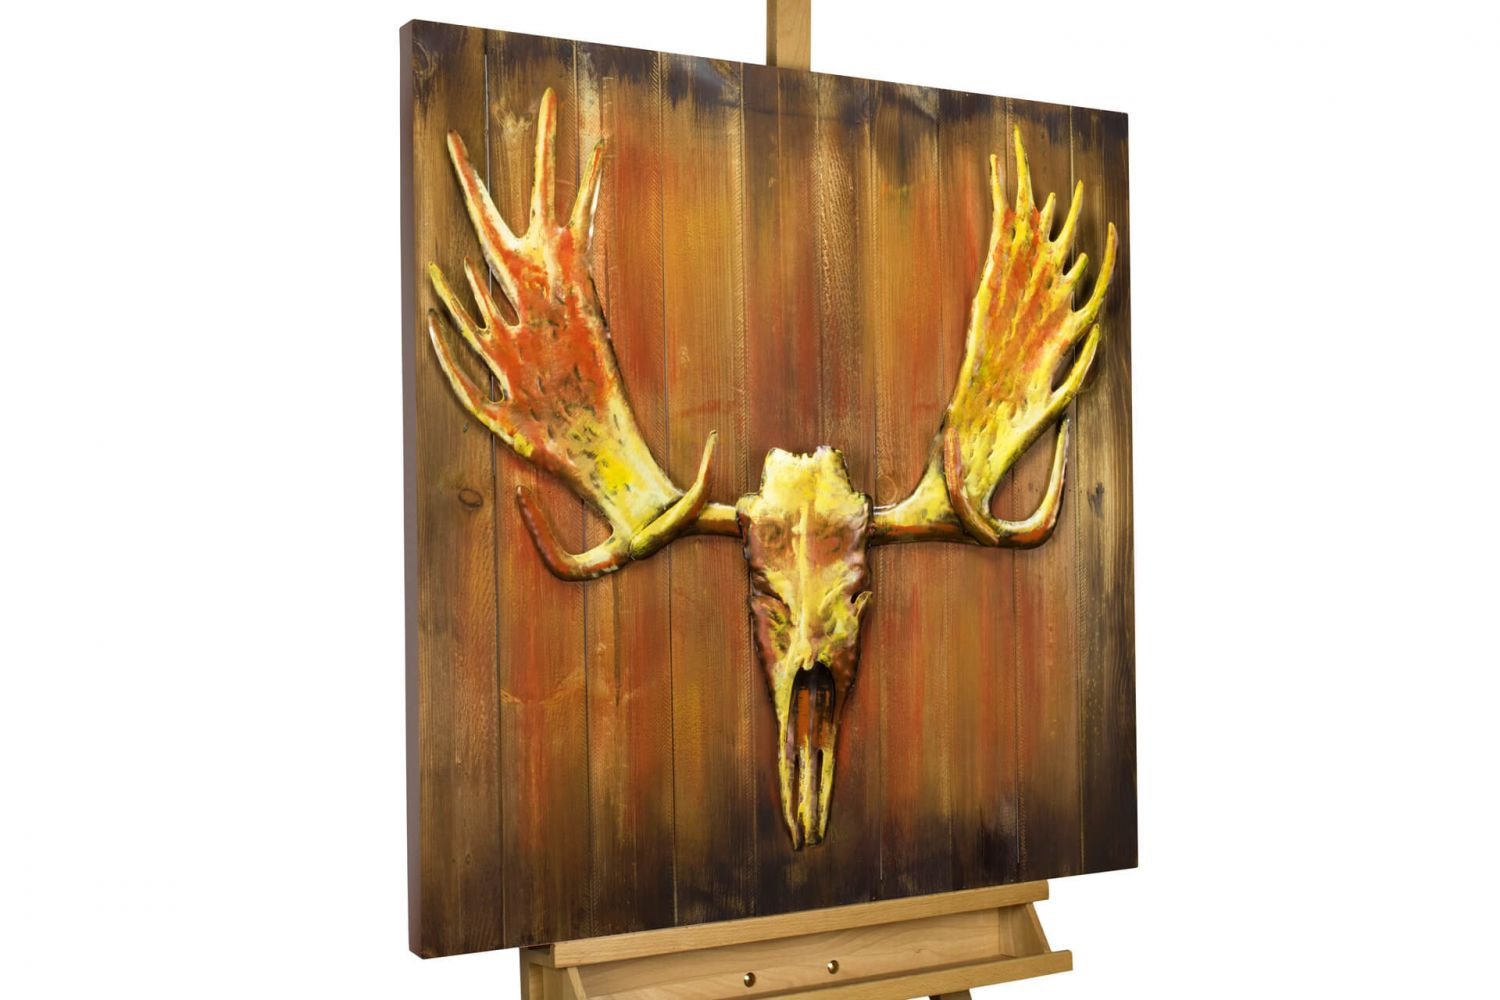 Wood Wall Art Rustic Decor Mural Painting Decor 31x31x2inches